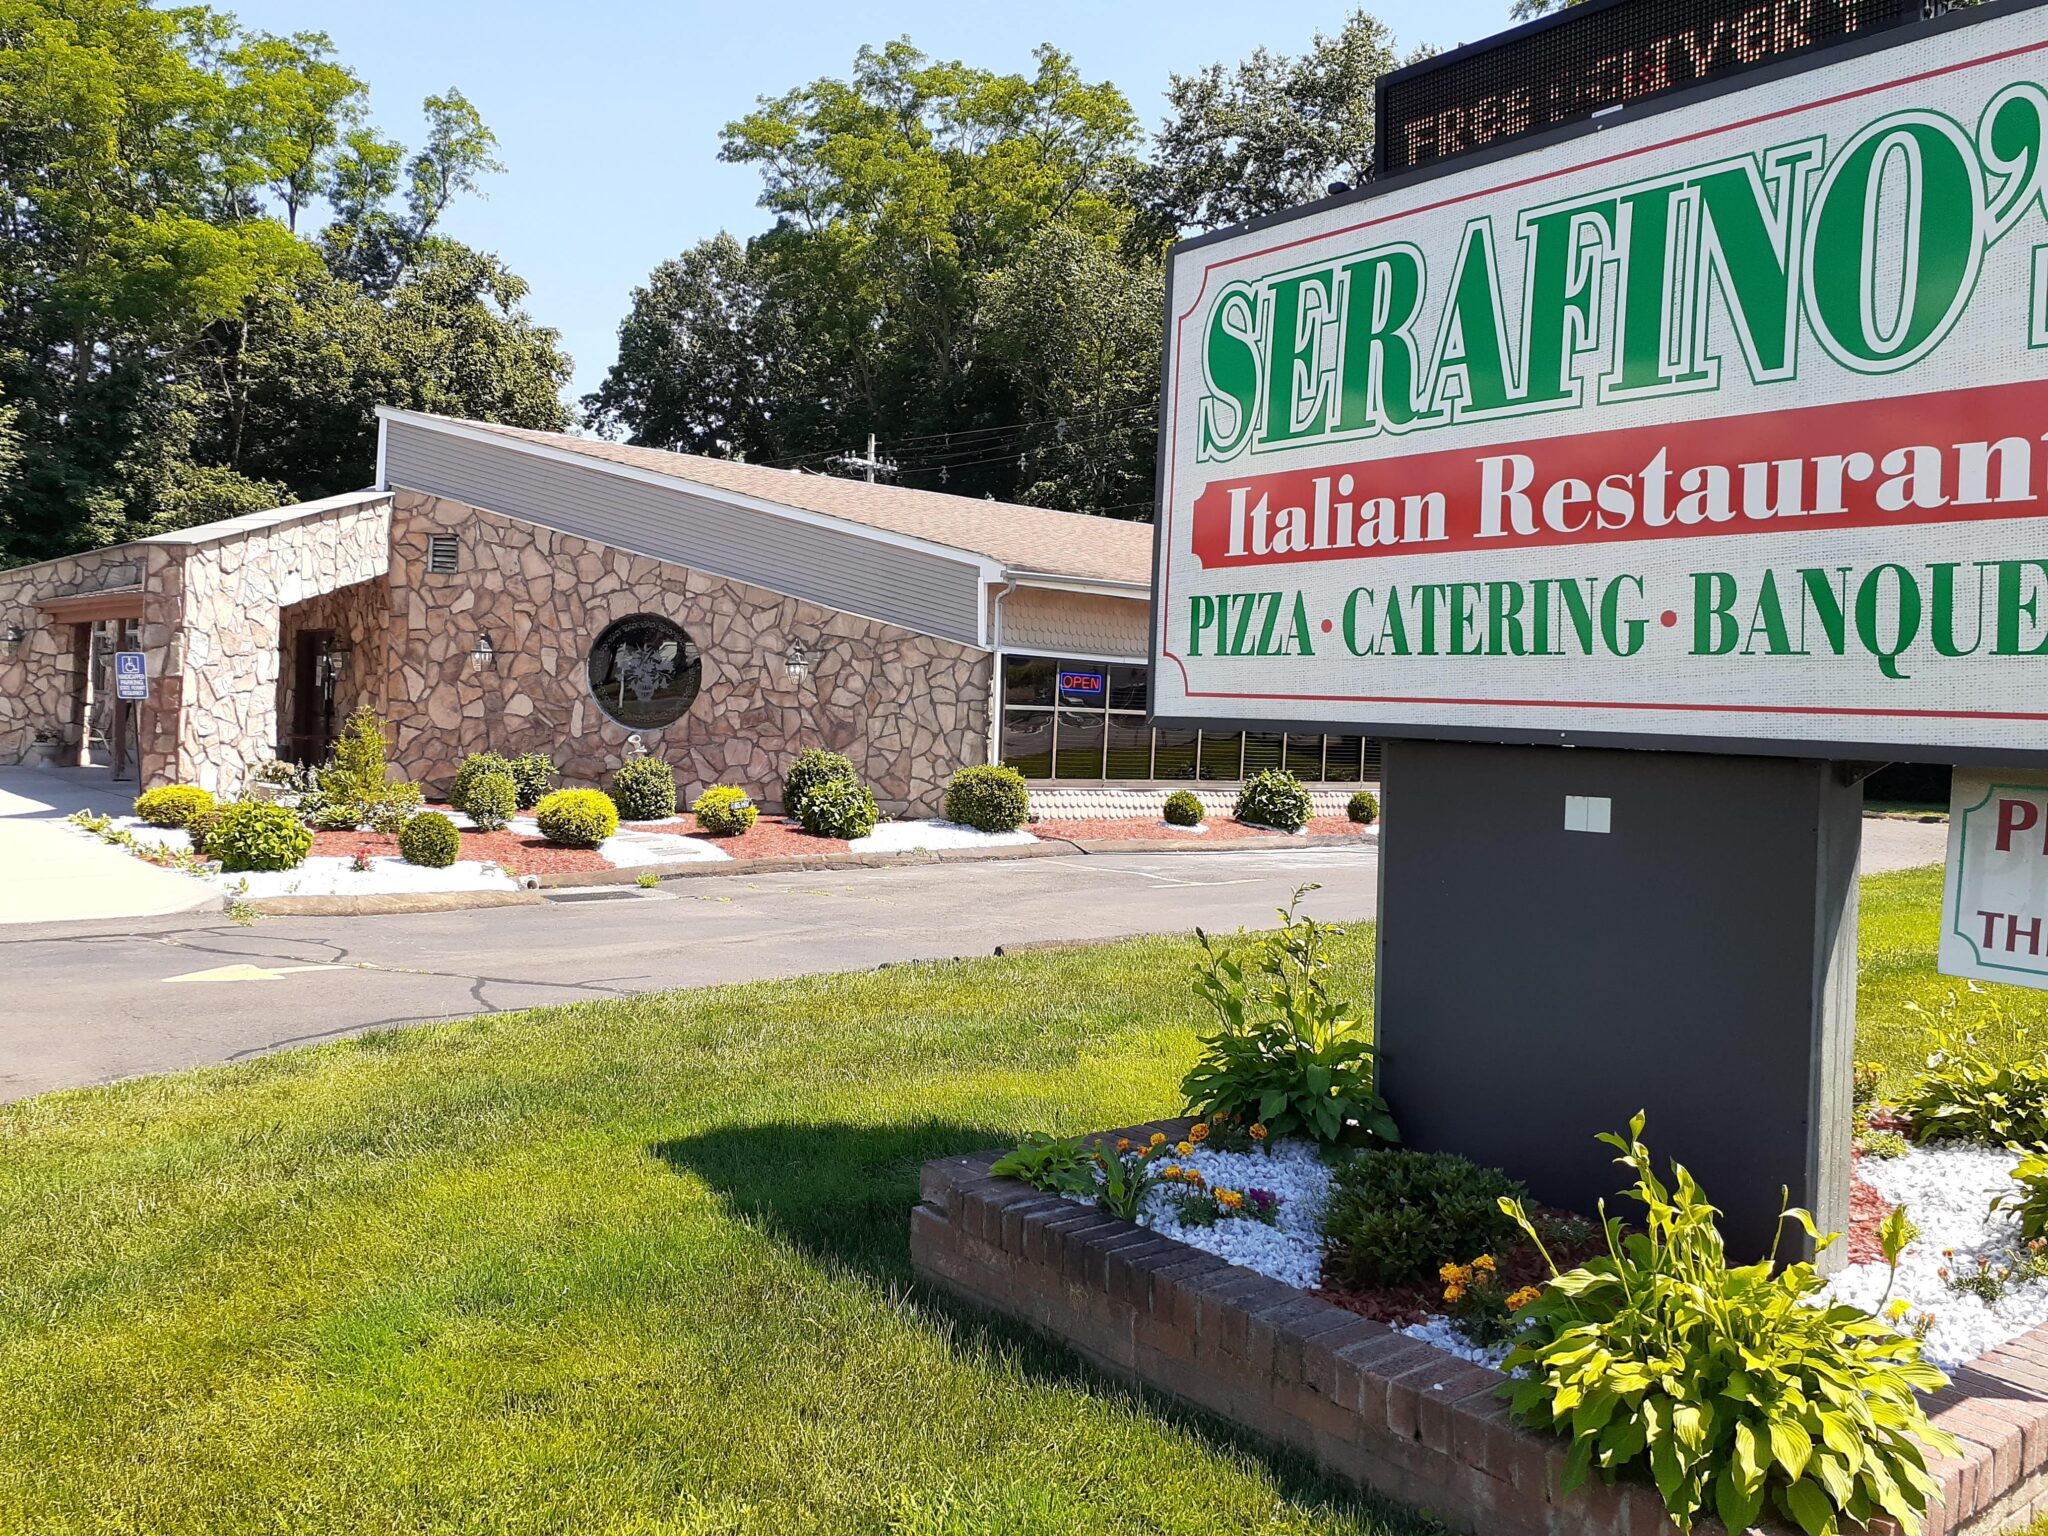 Serafinos Wallingford